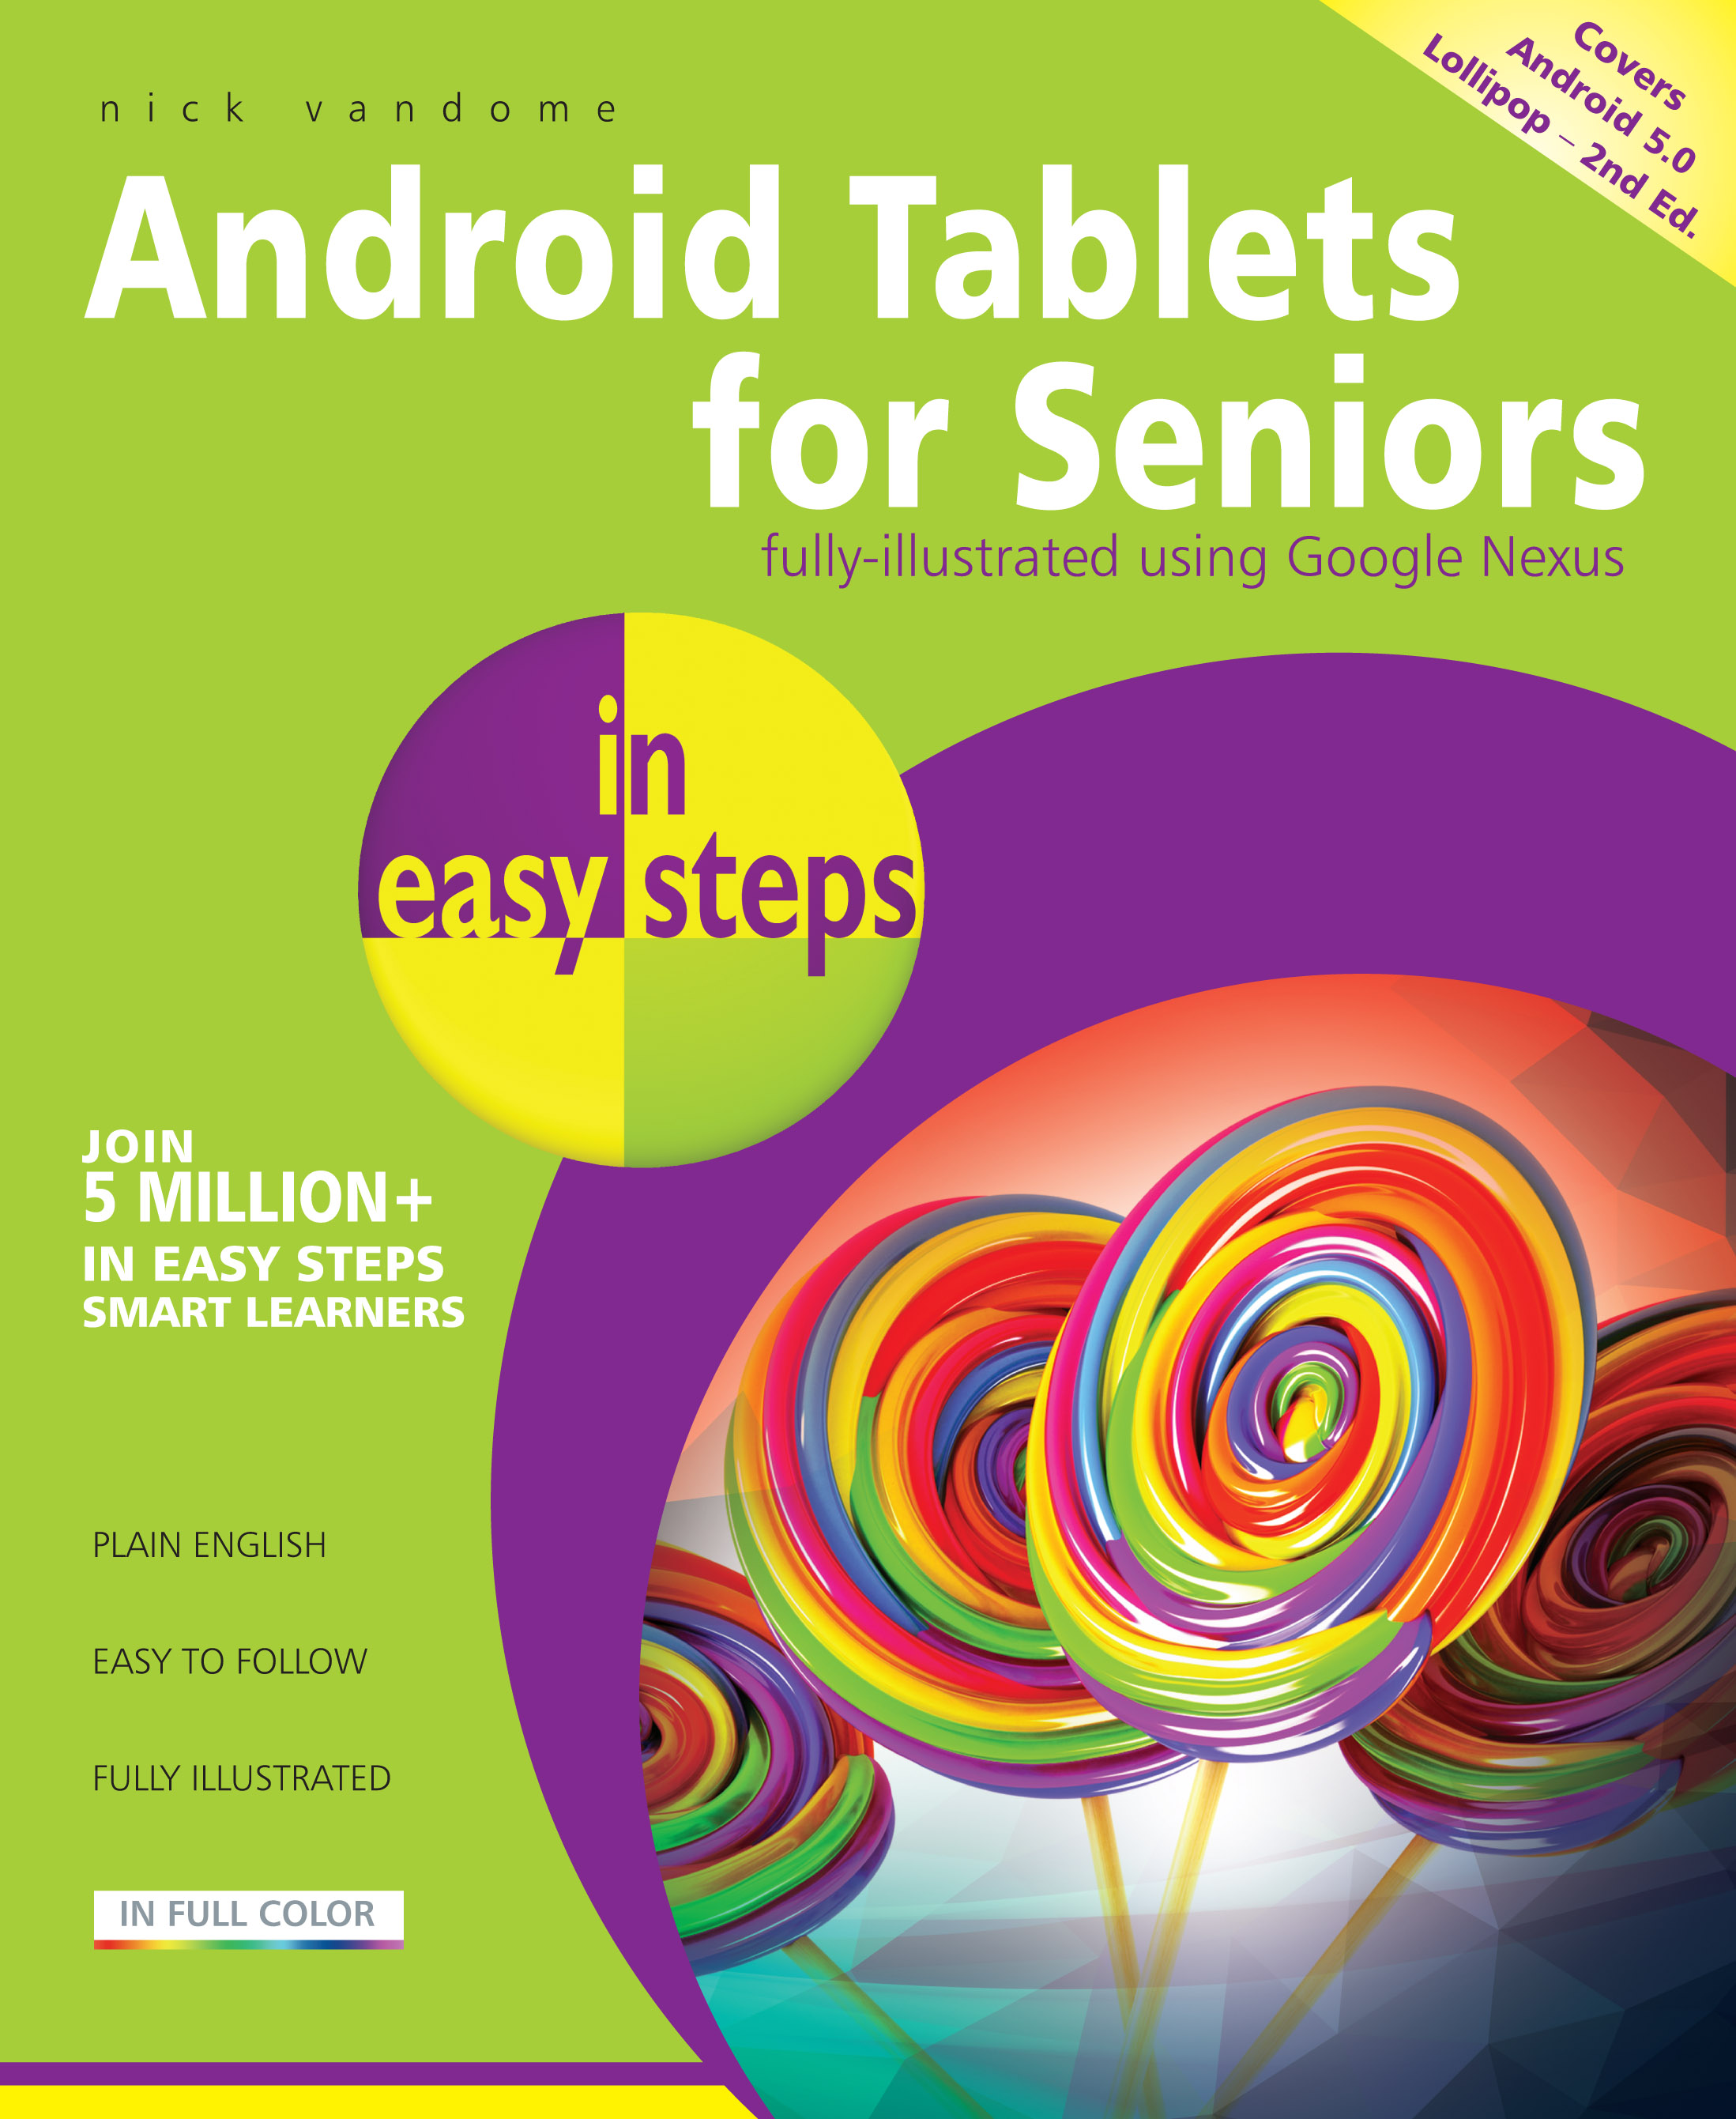 9781840786491 Android Tablets for Seniors in easy steps 9781840786491